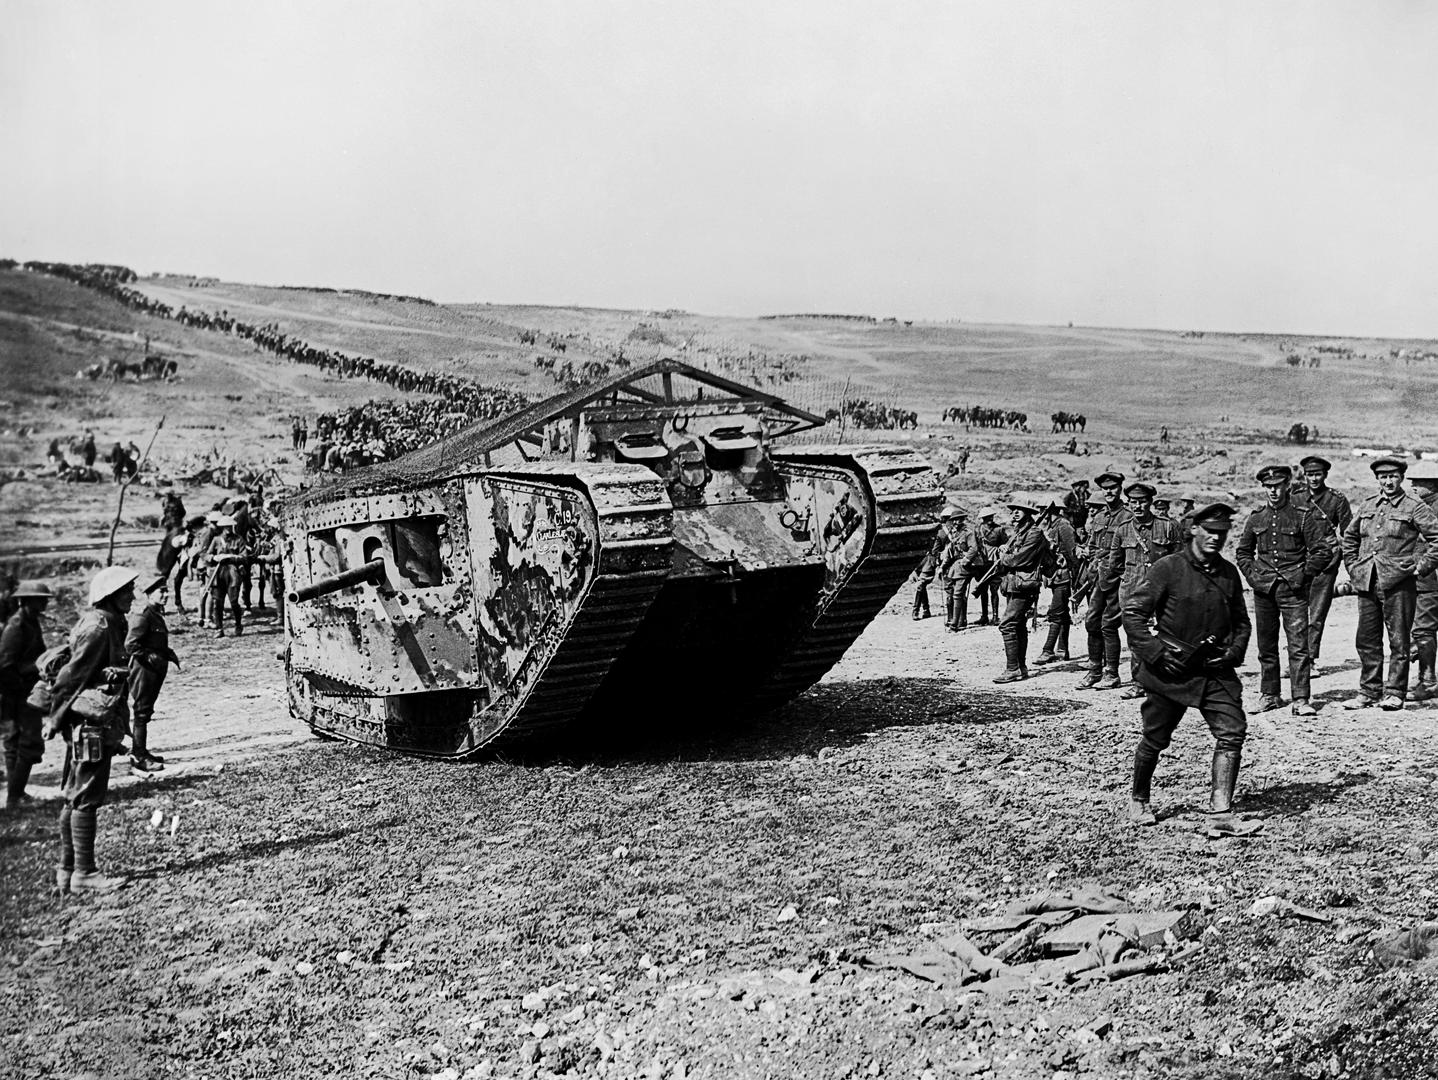 Slide 3 of 10: A 'C' Company Mark I (C19 Clan Leslie) in Chimpanzee Valley preparing for action on 15 Sept. 1916. First use of tanks in warfare at Battle of Flers-Courcelette, part of the Battle of the Somme.